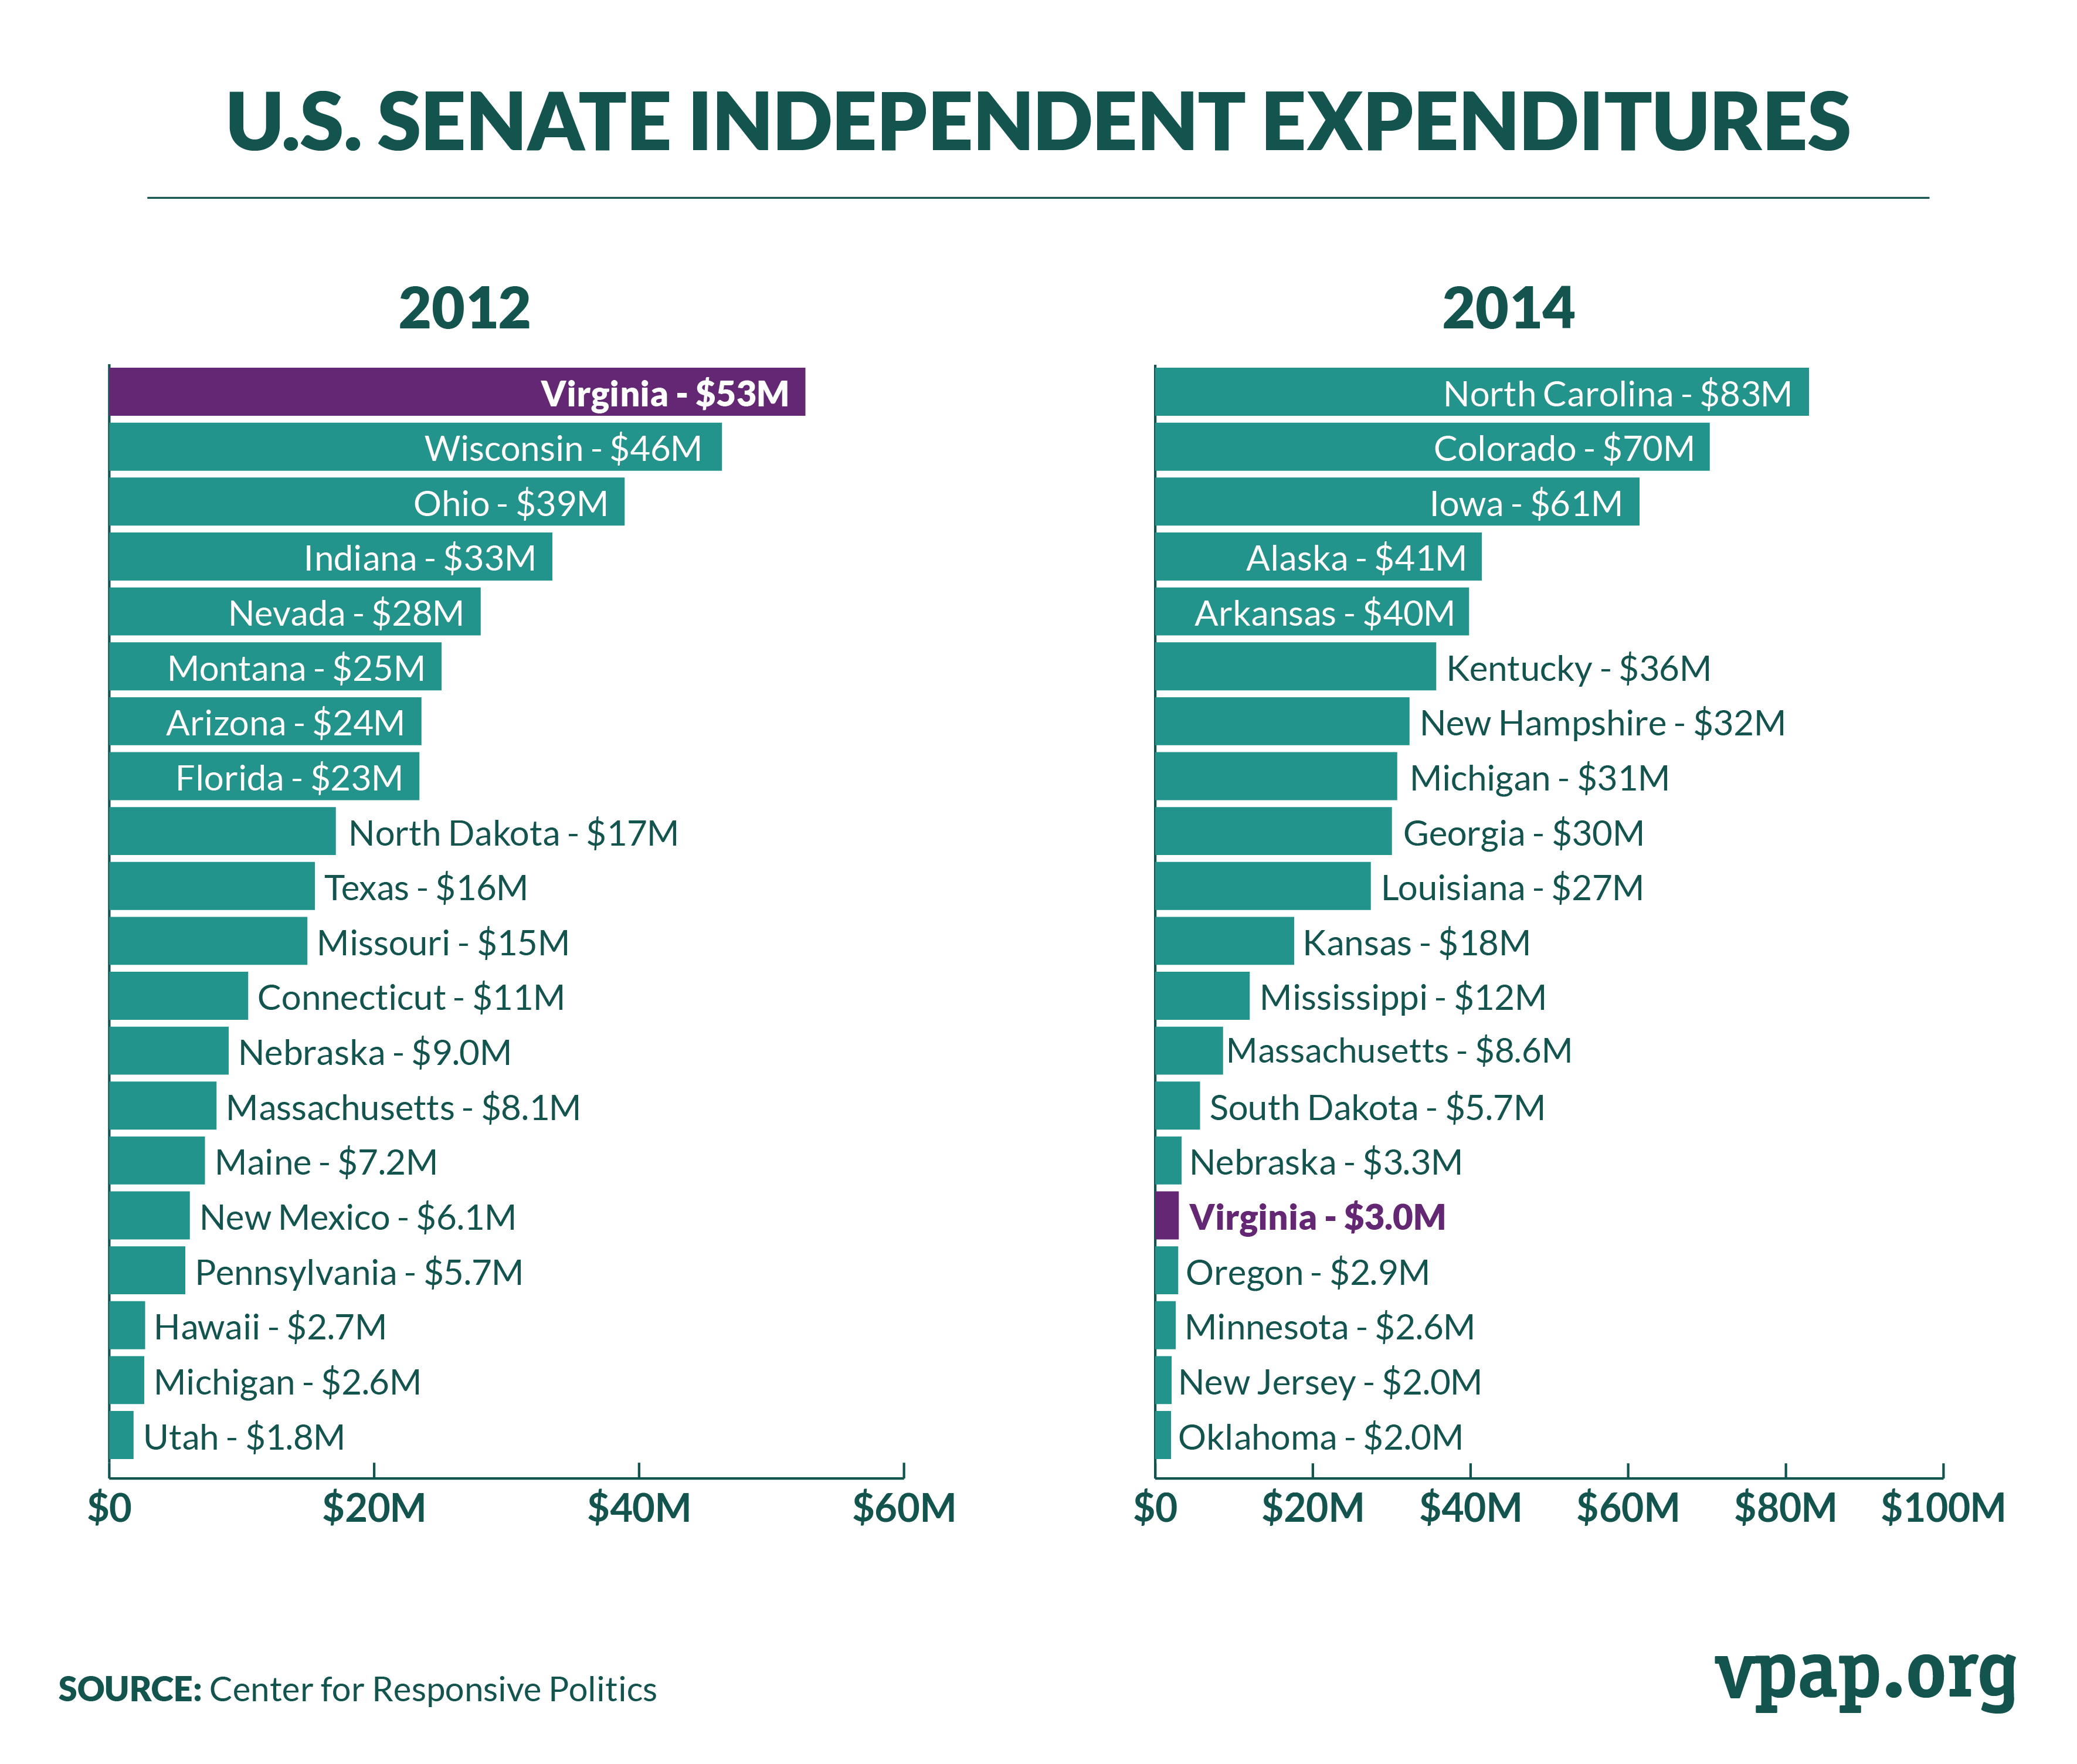 U.S. Senate Independent Expenditures, 2012 & 2014